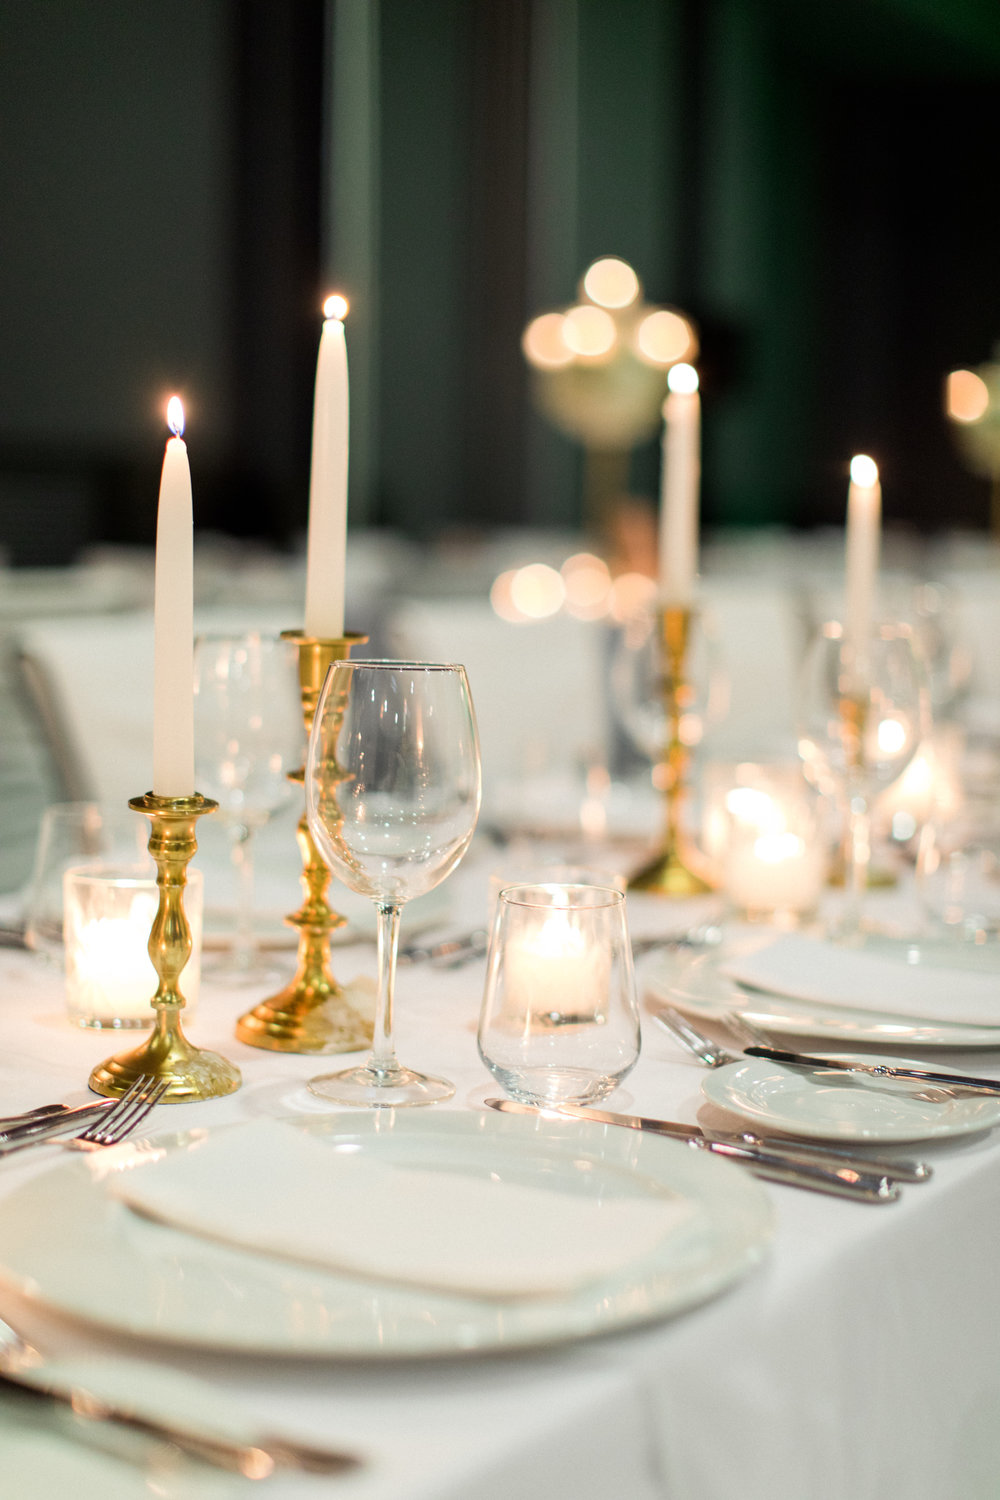 wedding-dinner-party-jewish-traditional-menu-luxury-event-decoration-hanging-wisteria-crystal-chandeliers-light-design-table numbers-table-arrangements-gold-candle-holder